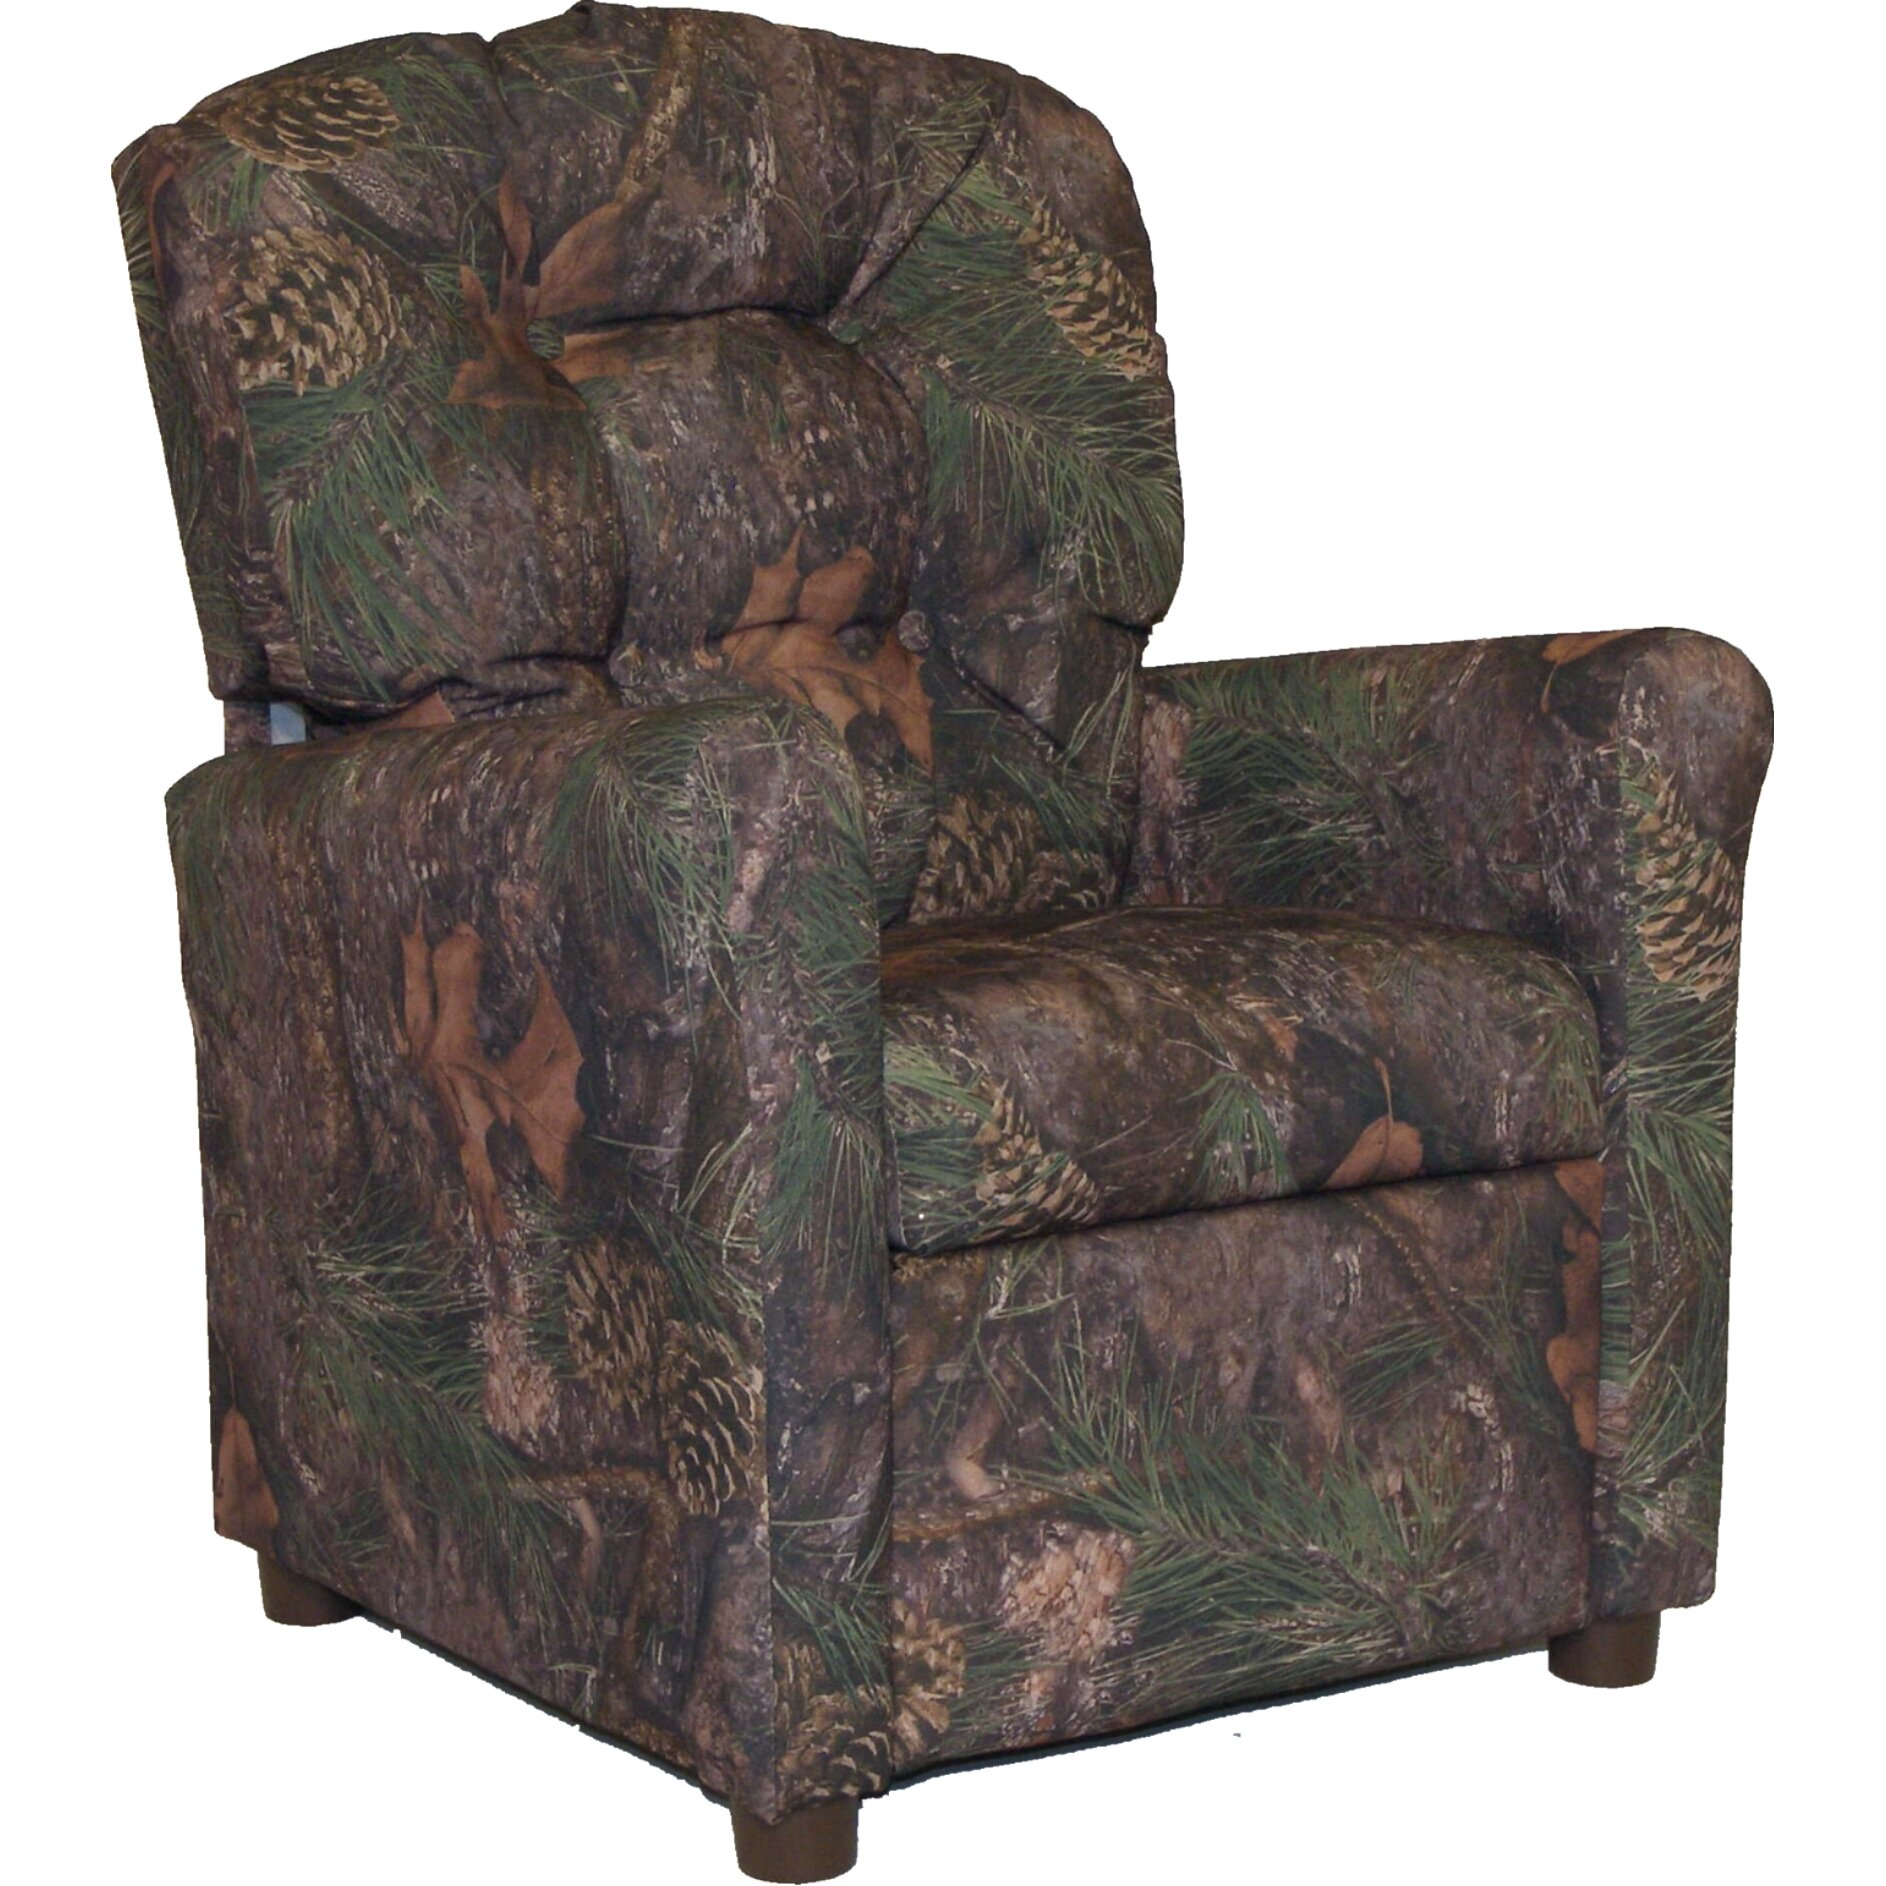 Youth camo recliner kidz world mossy oak camouflage kid for Camo chaise lounge